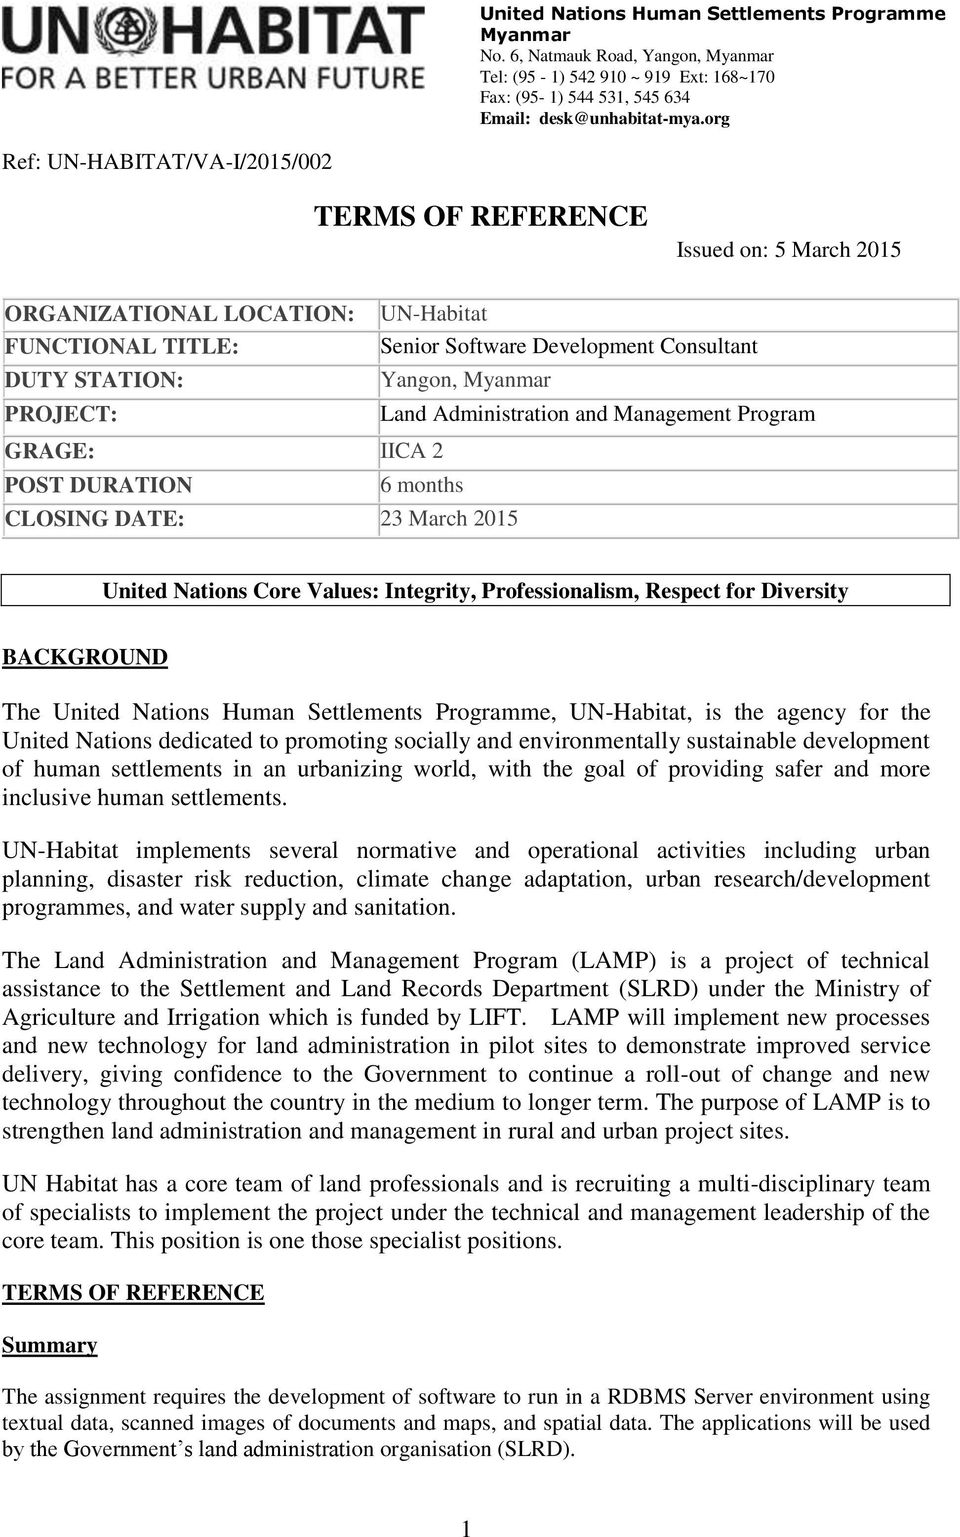 PROJECT: Land Administration and Management Program GRAGE: IICA 2 POST DURATION 6 months CLOSING DATE: 23 March 2015 United Nations Core Values: Integrity, Professionalism, Respect for Diversity